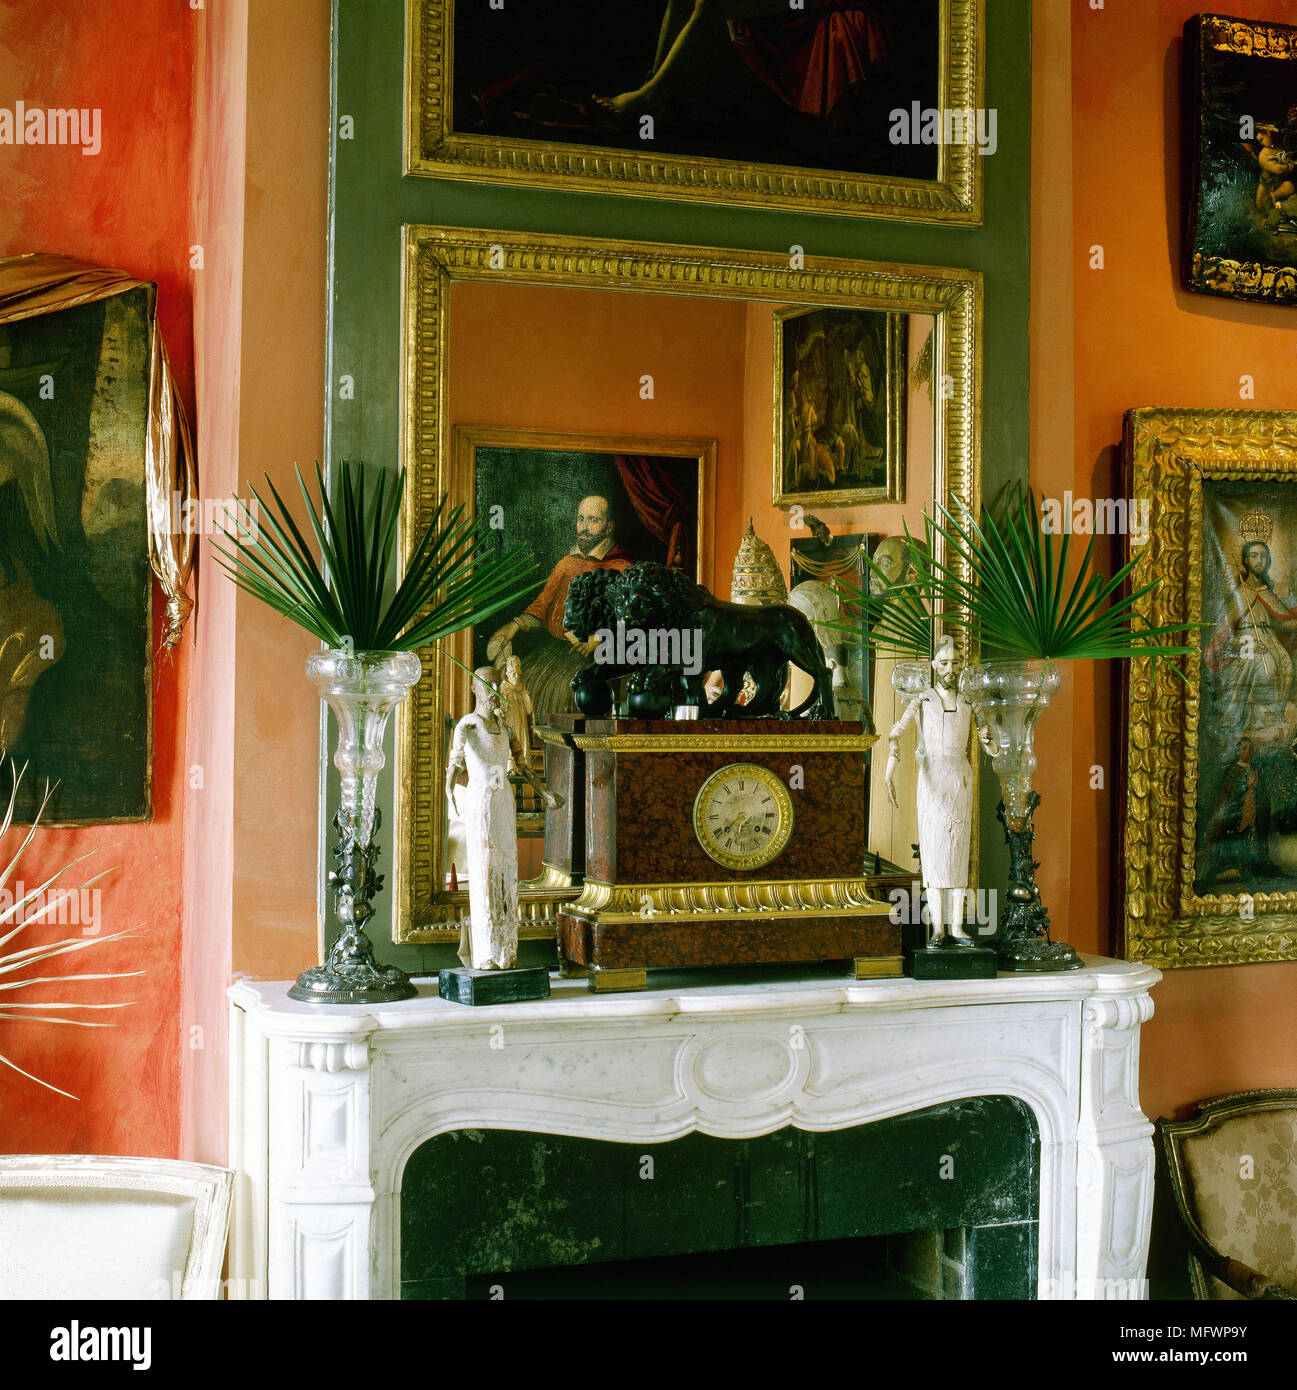 Clock On The Mantelpiece High Resolution Stock Photography And Images Alamy